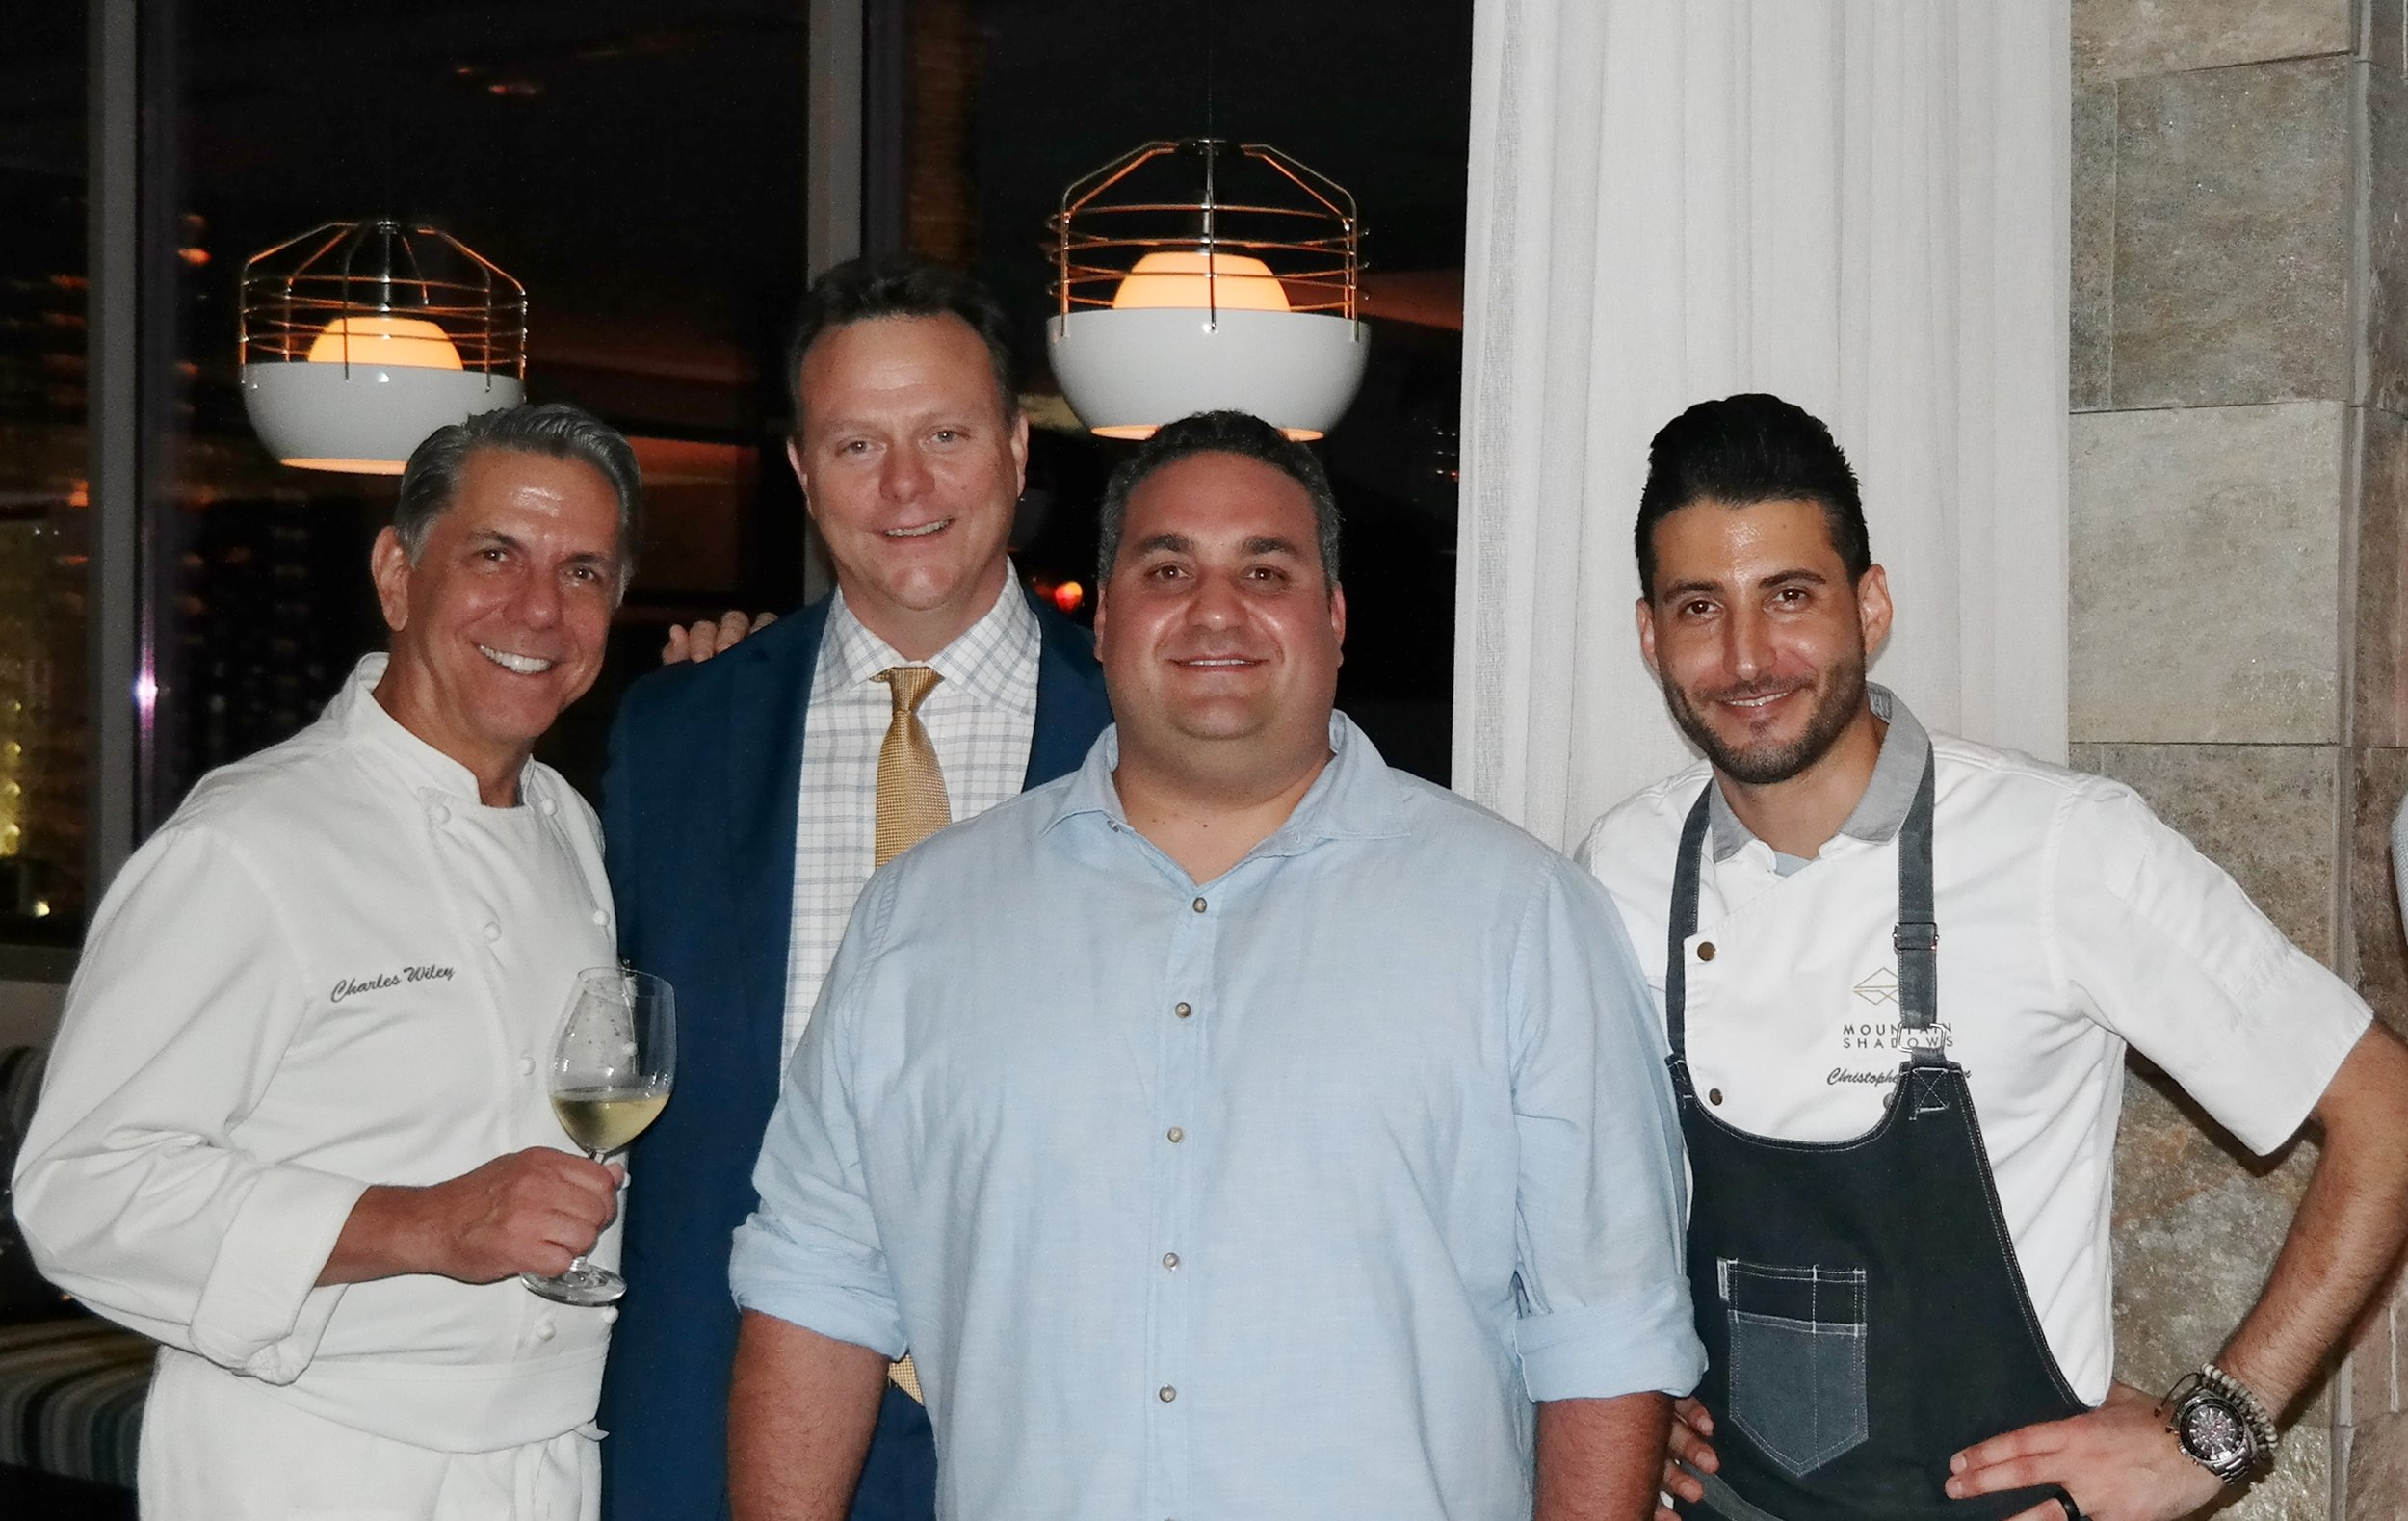 Executive Chef Charles Wiley, Food and Beverage Director Jim Gallen, Jason Raducha of Noble Bread, and Executive Sous Chef Christopher Brugman